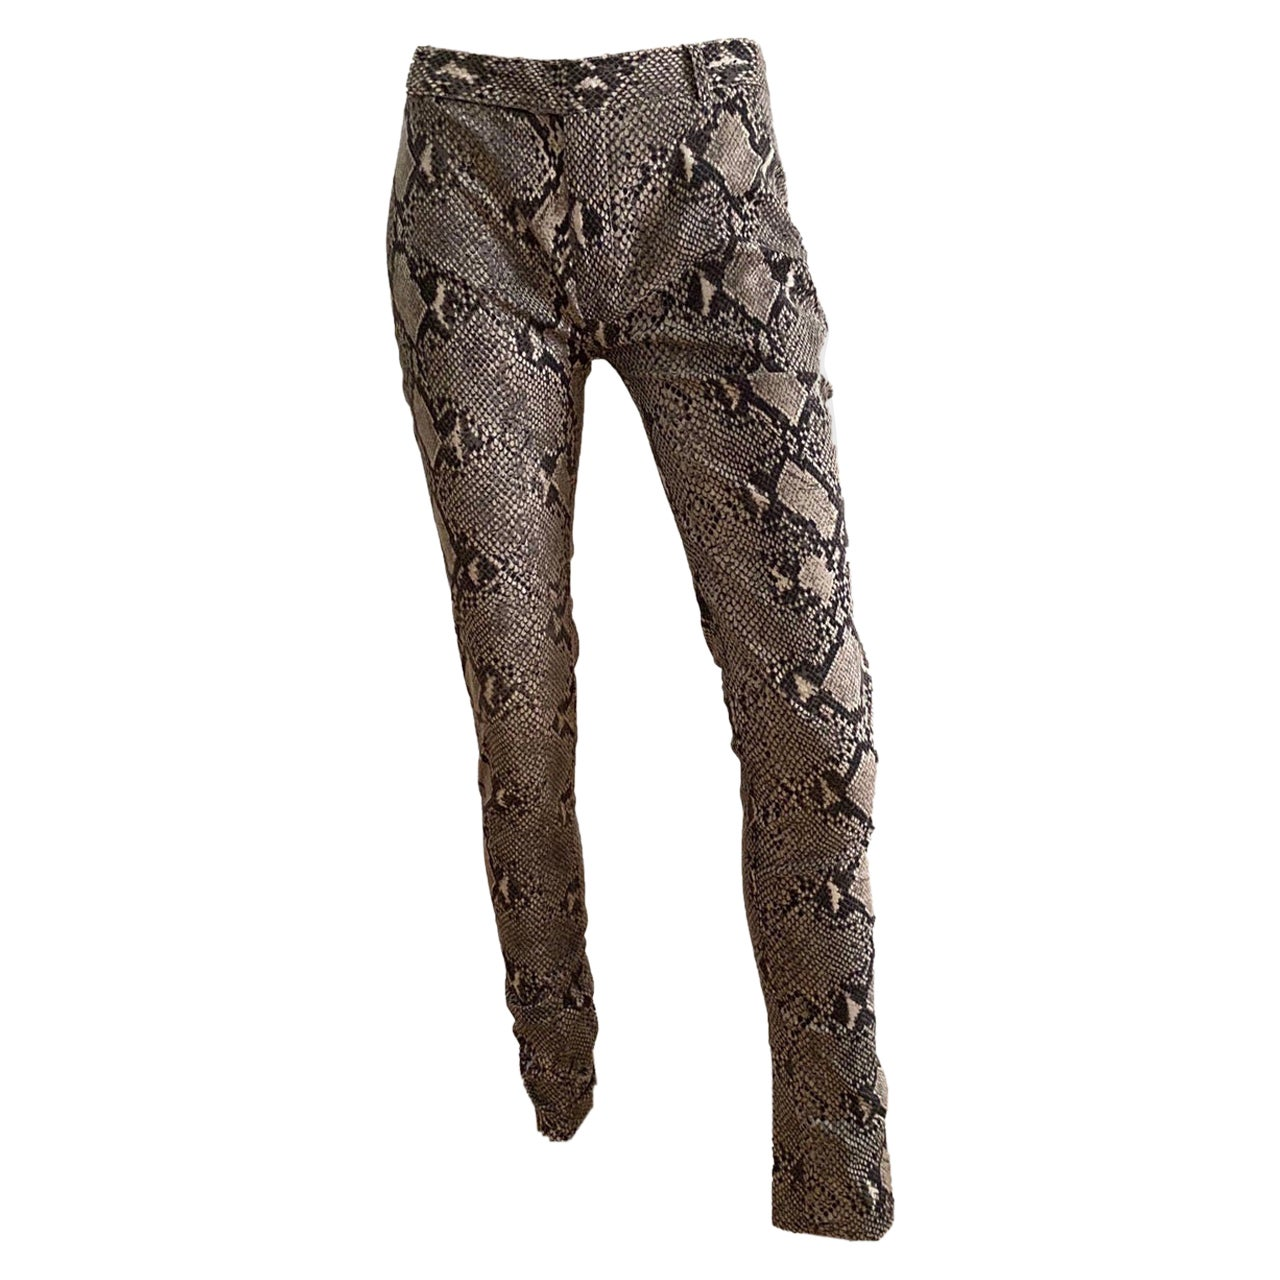 Gucci by Tom Ford S/S 2000 Python print Pants